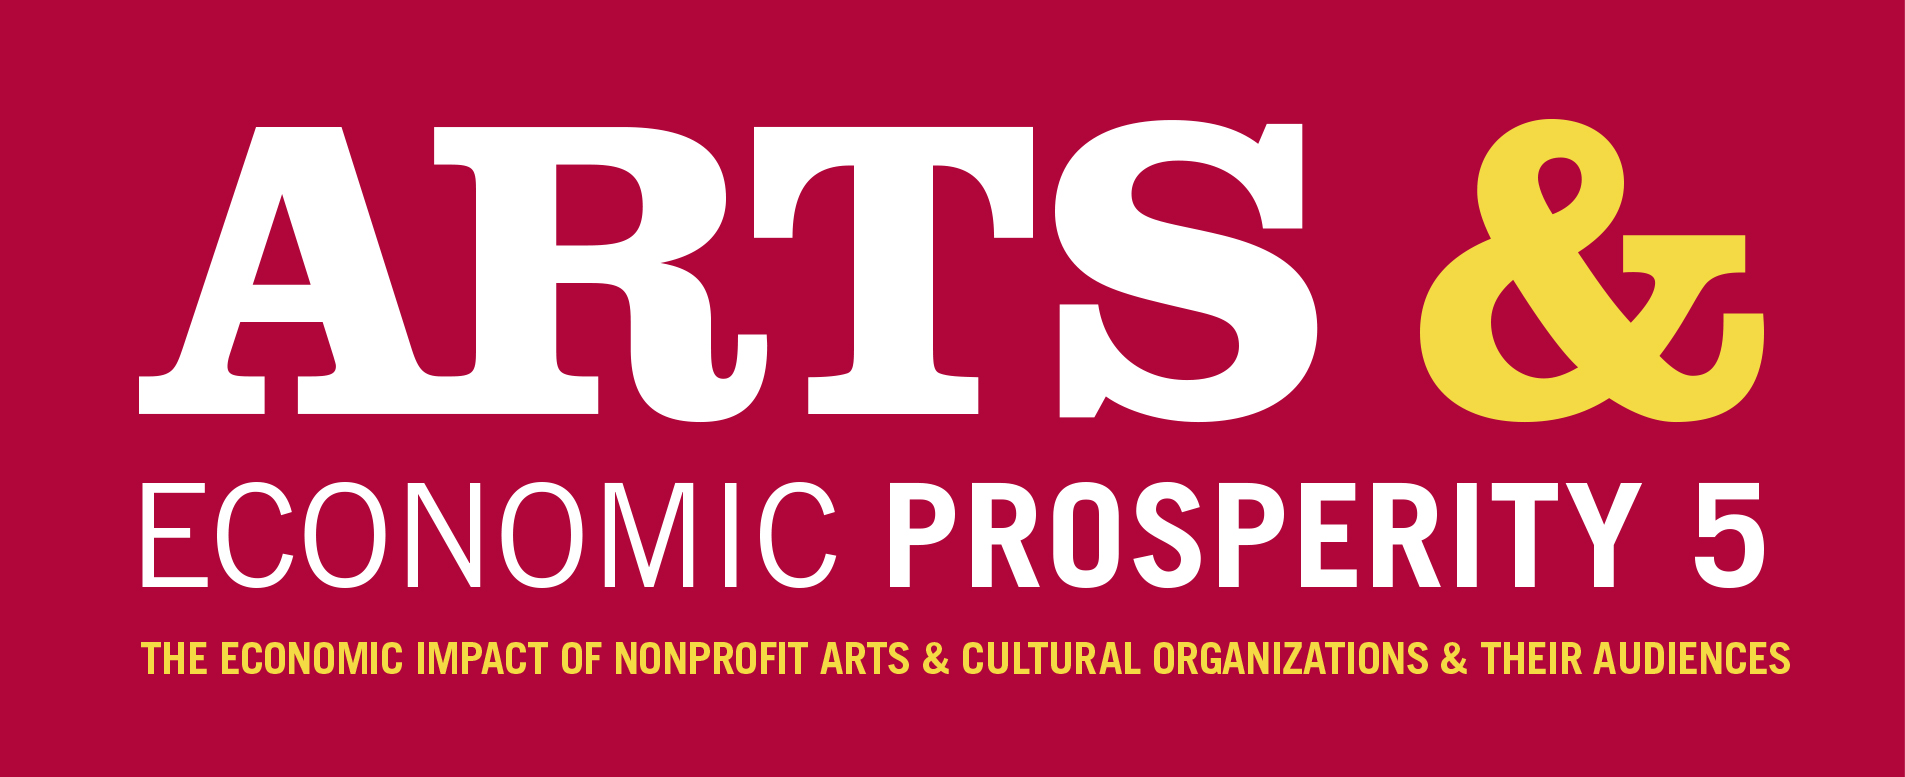 Arts & Economic Prosperity 5: The Economic Impact of Nonprofit Arts & Culture Organizations & Their Audiences